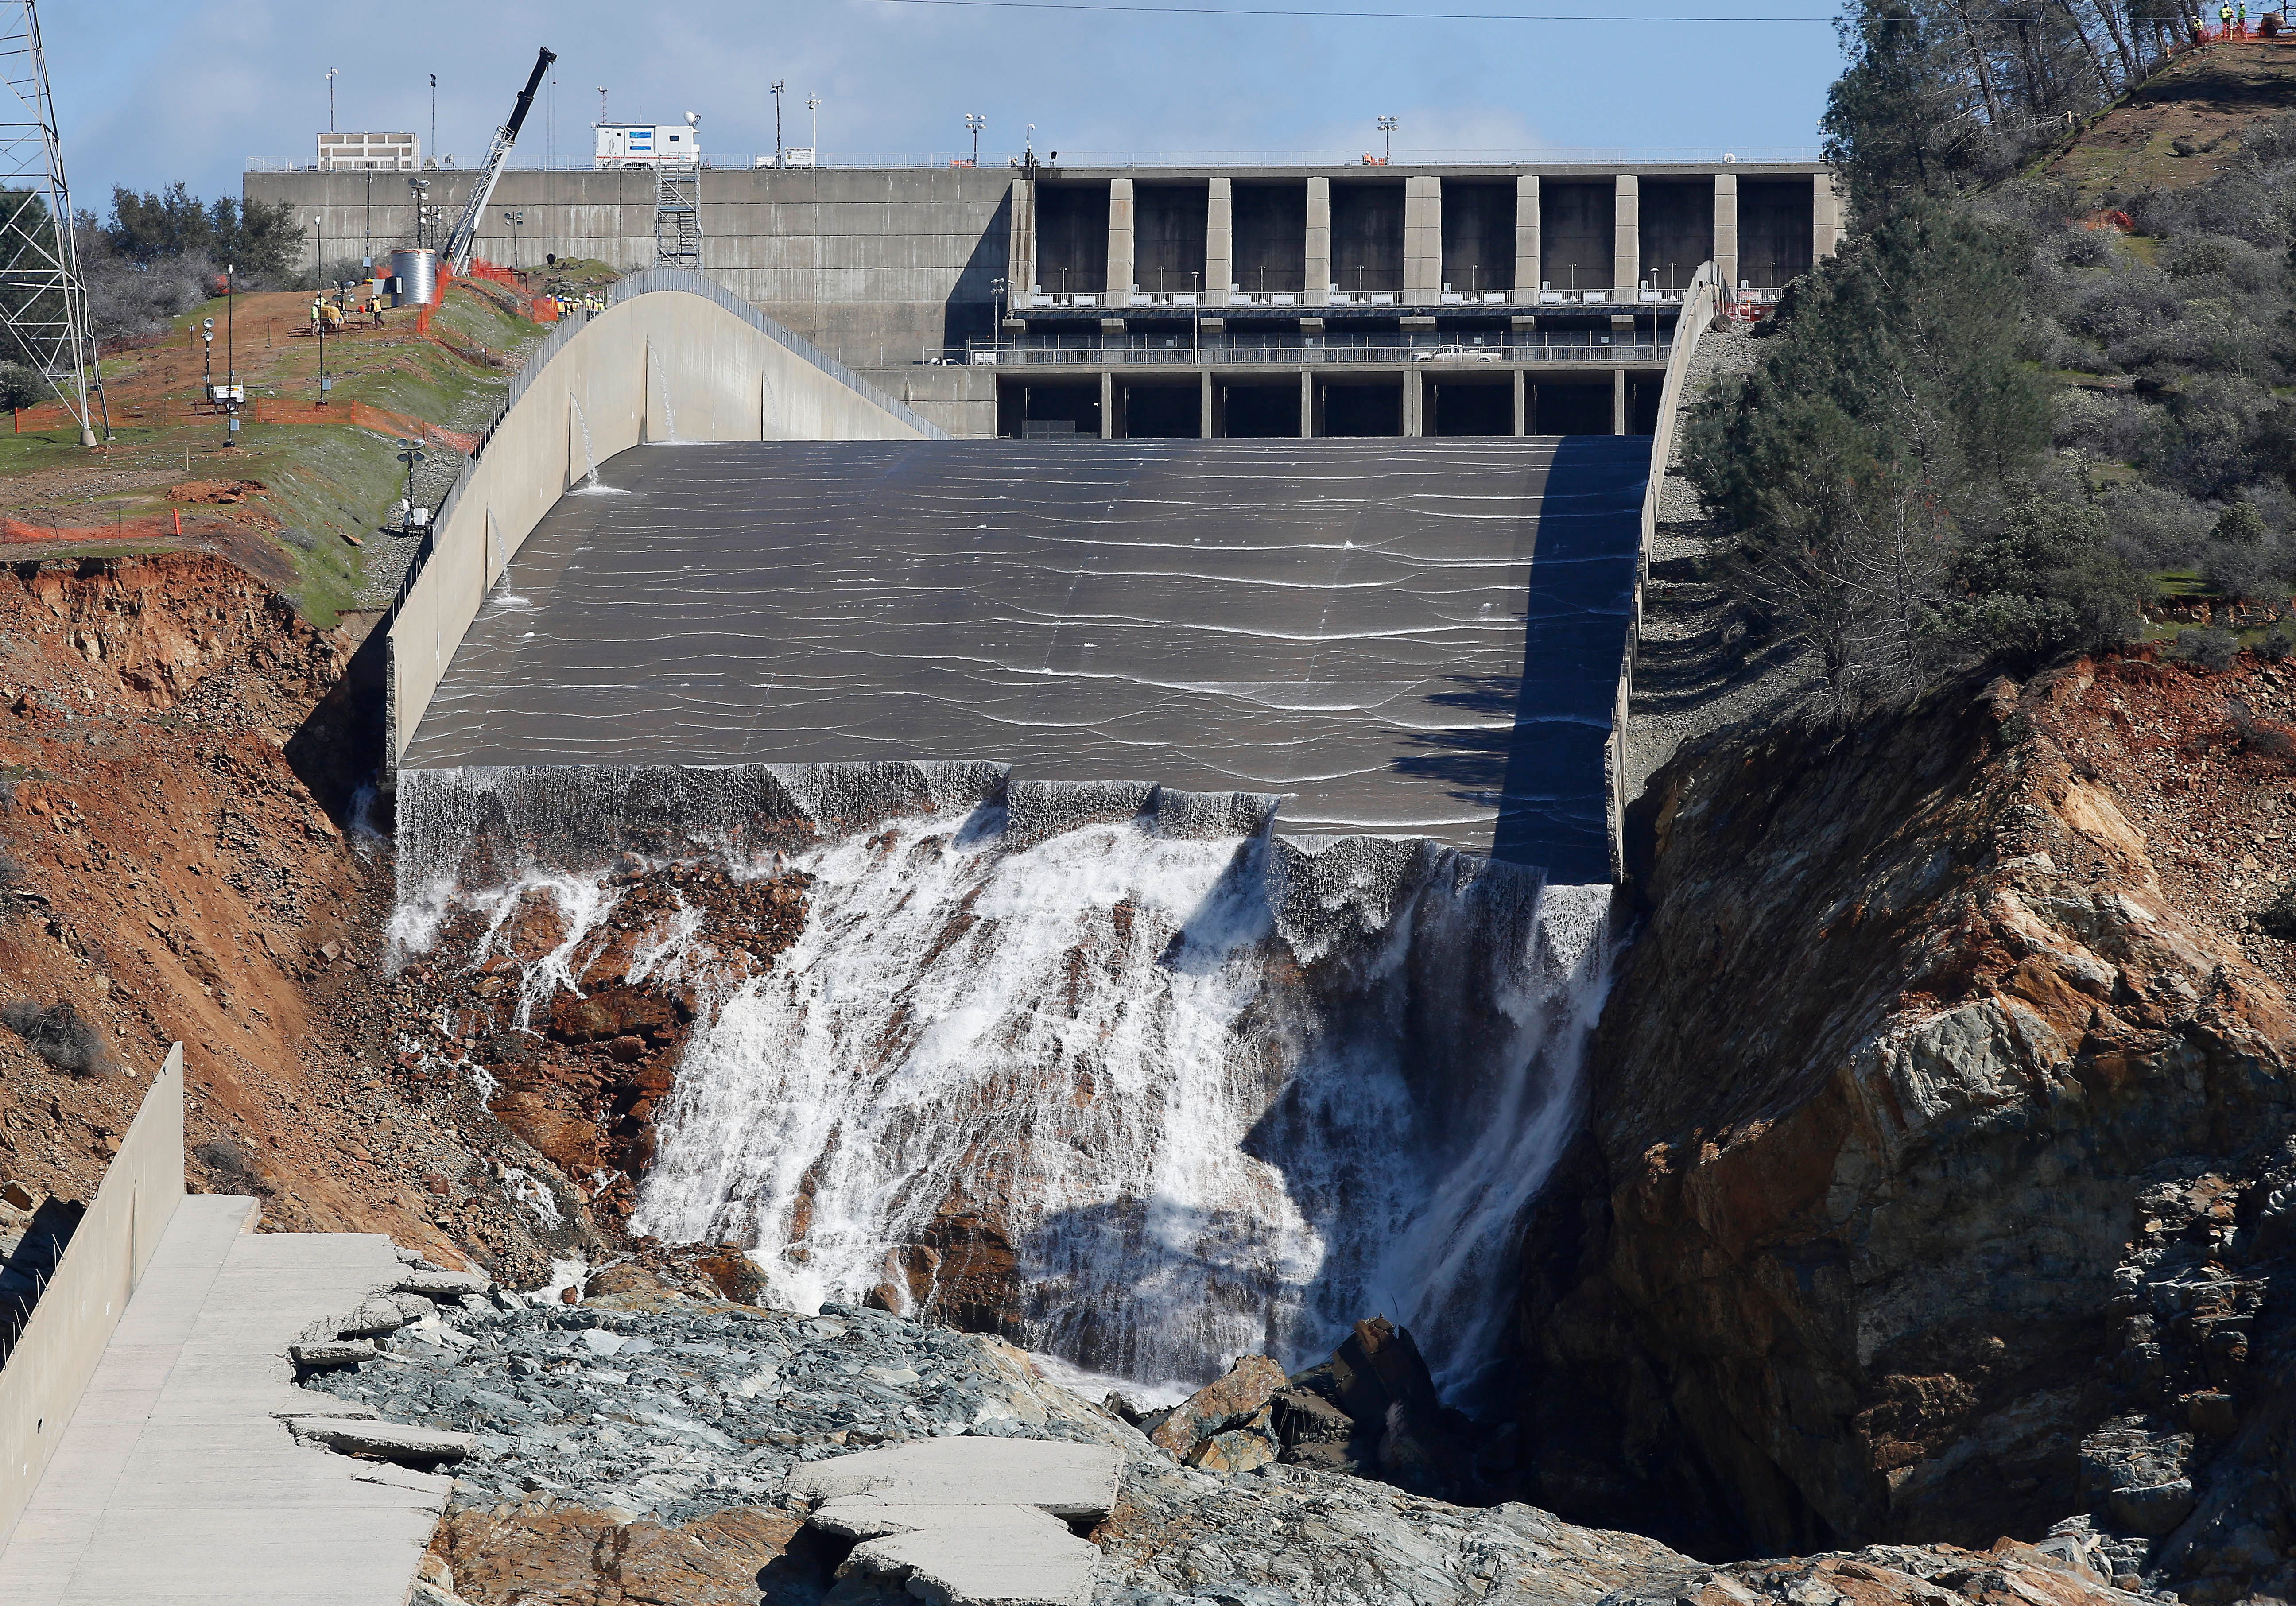 Good Luck Repairing The Badly Damaged Oroville Dam | Gizmodo Australia